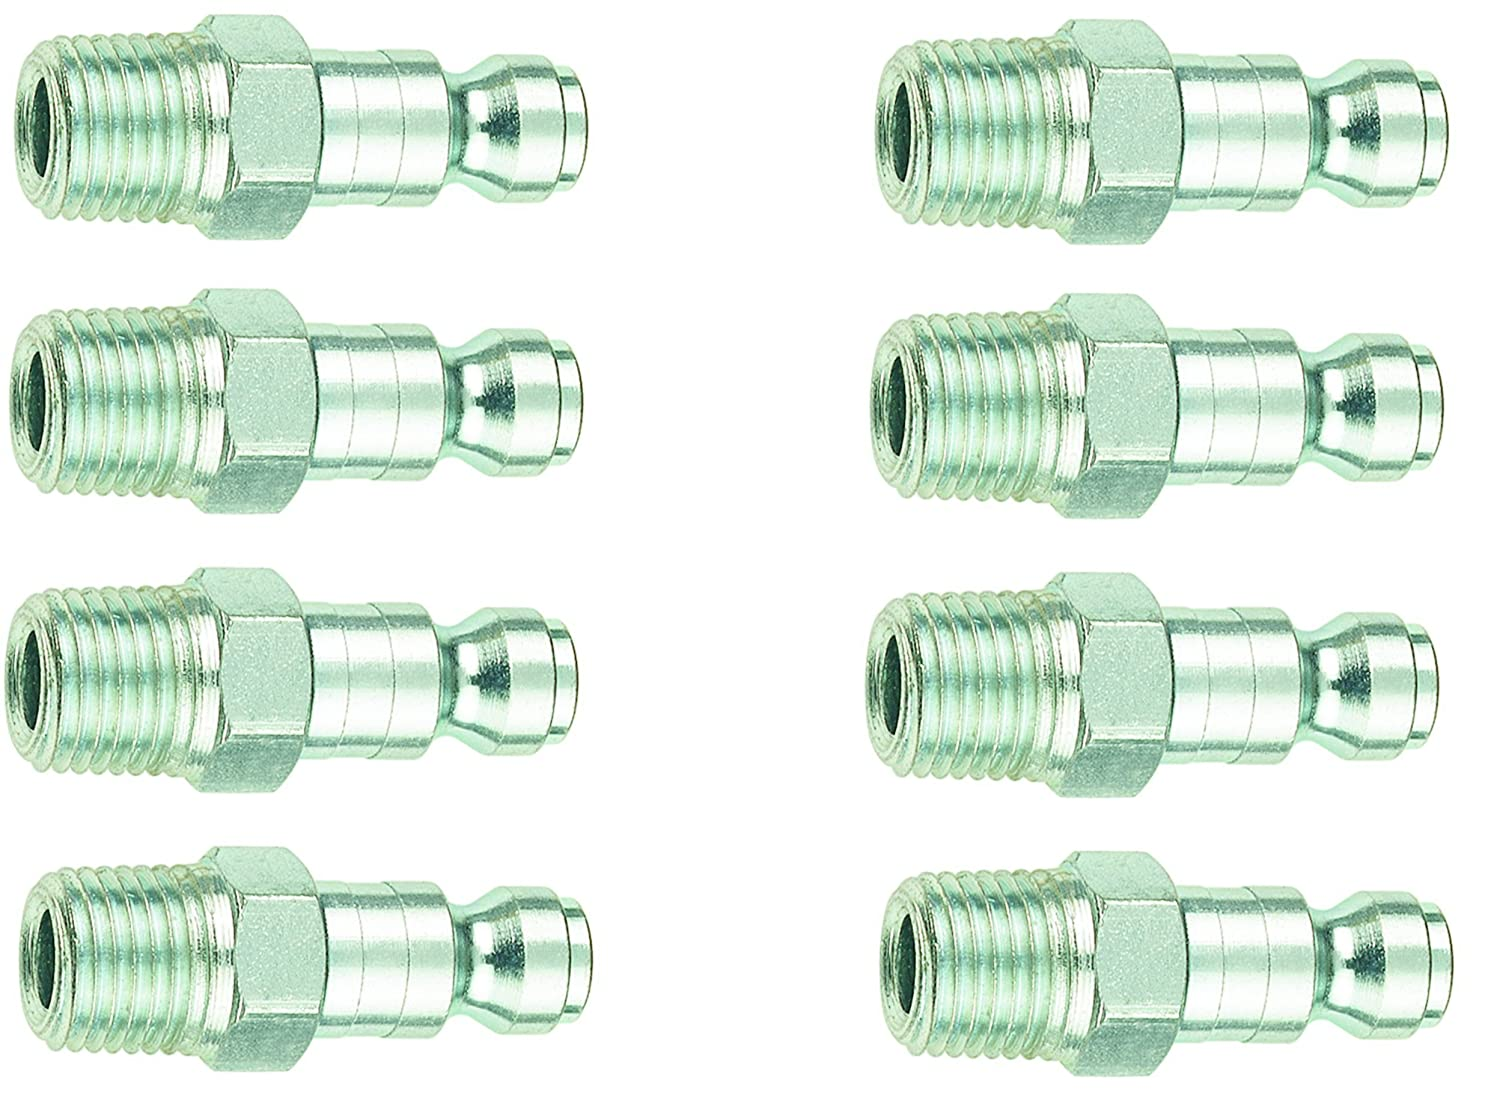 Female G3//4 Parker 1863 34 27-pk5 Adaptor Male BSPP R1 BSPT Pack of 5 316L Stainless Steel